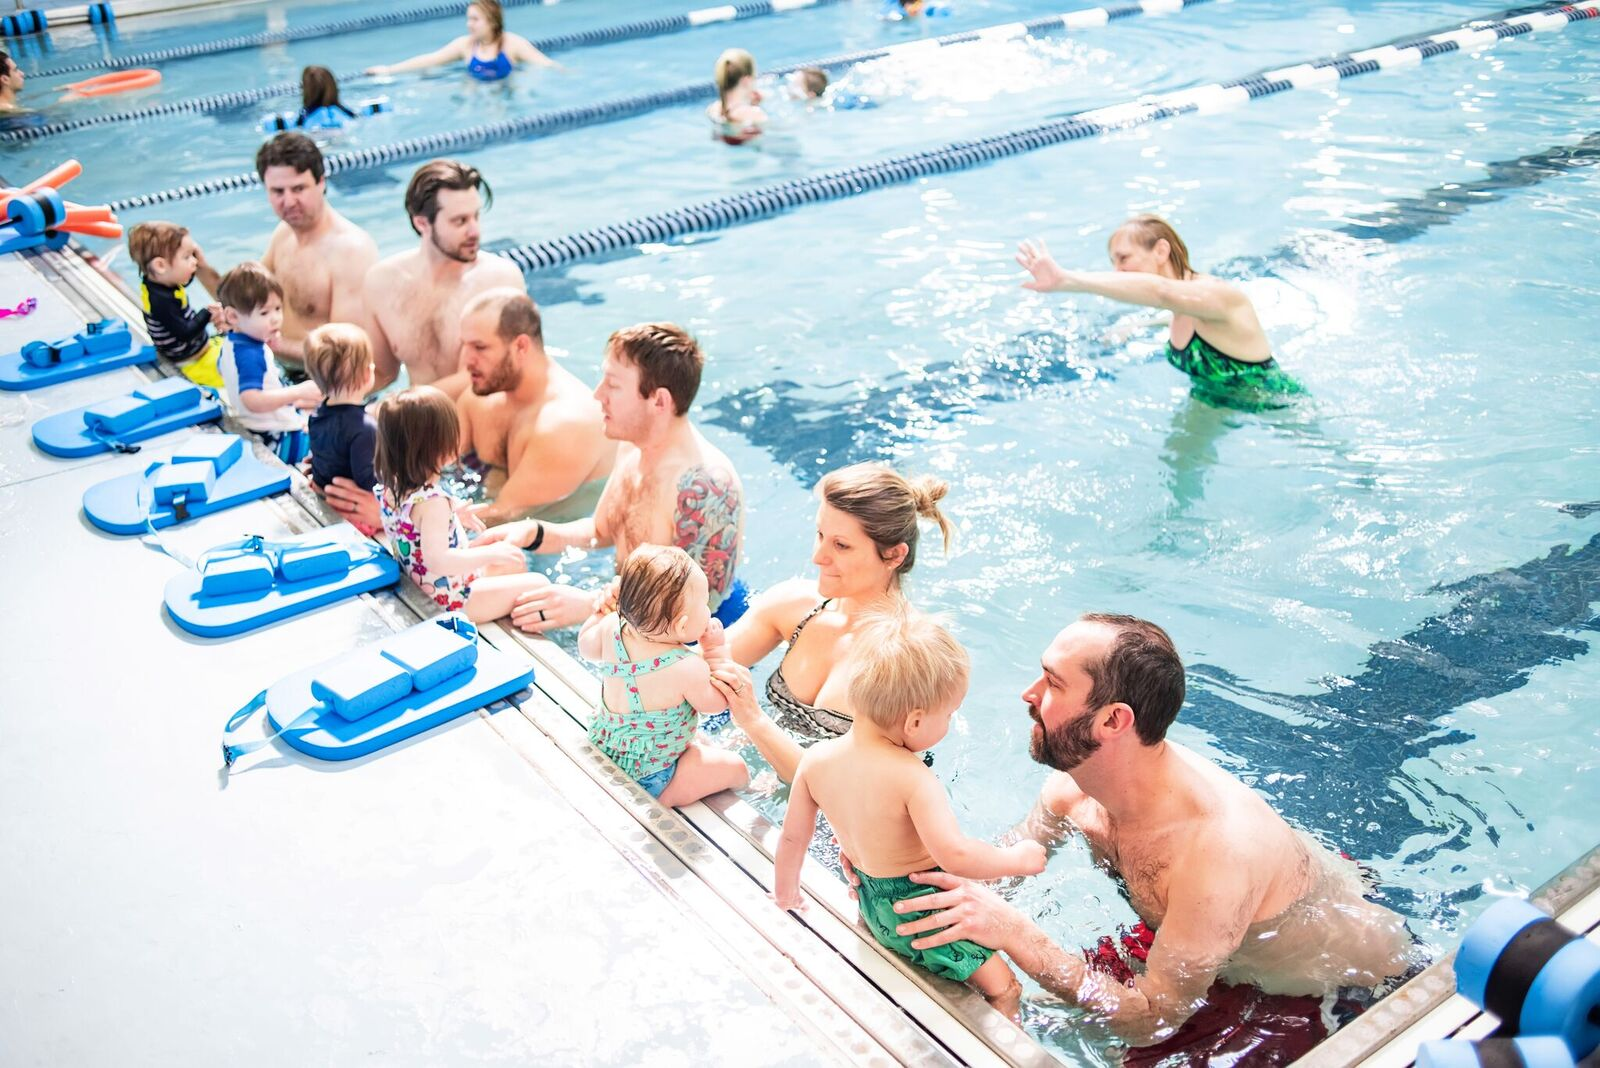 Child swimming in pool with parents